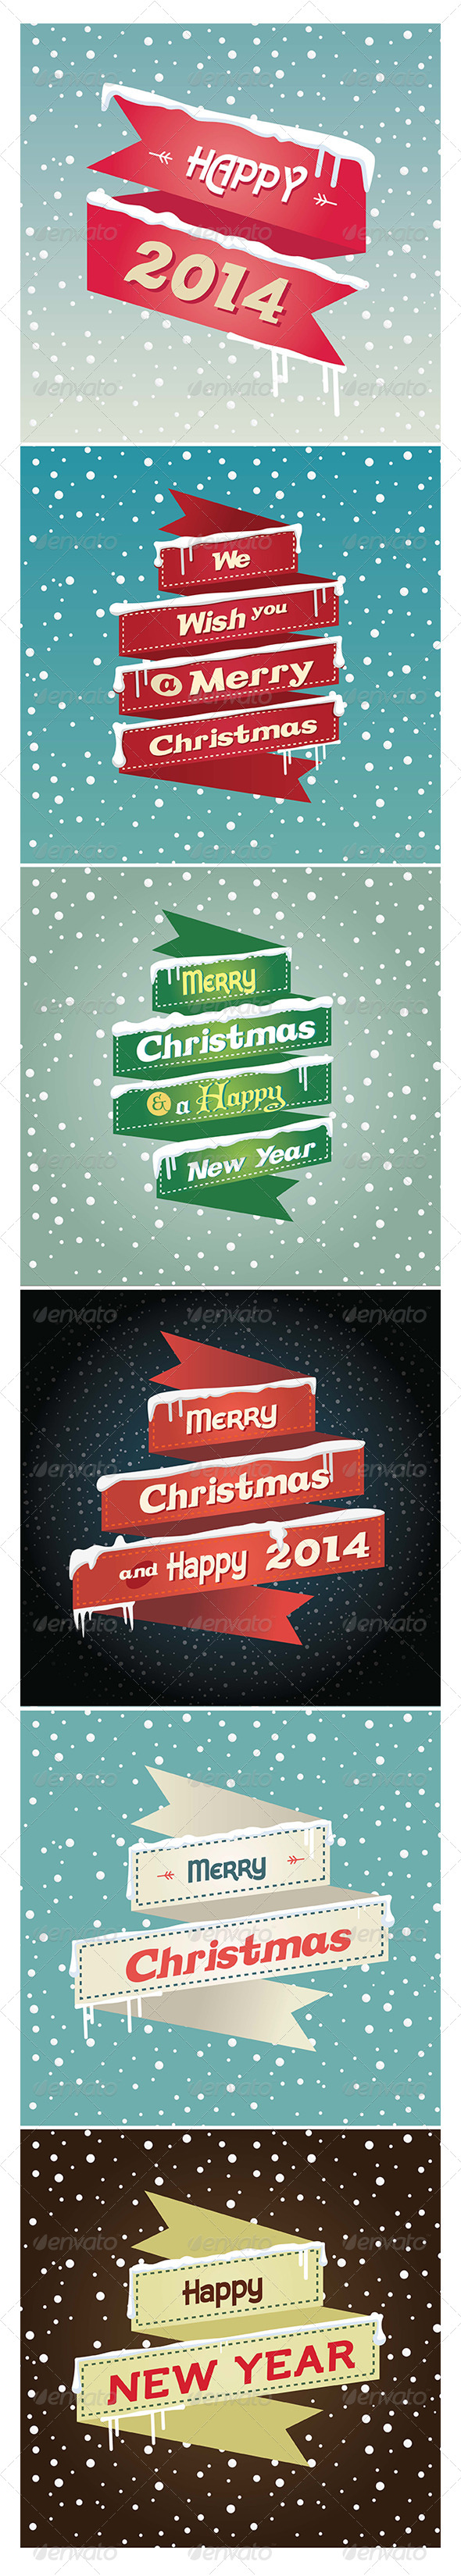 GraphicRiver Flat Robbons Christmas and Happy New Year 2014 6211201